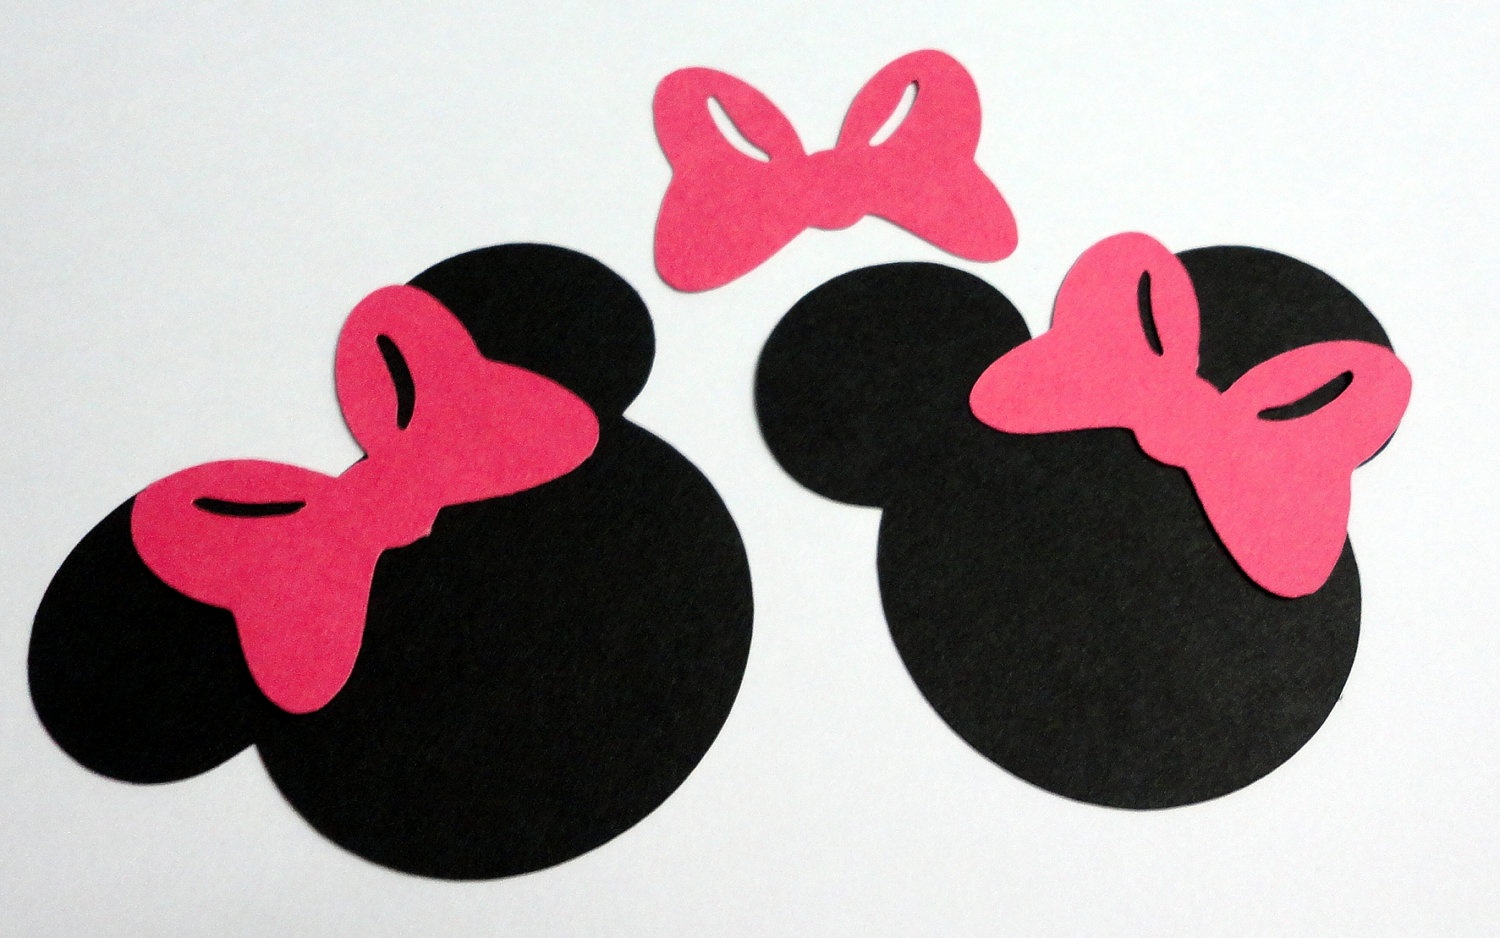 Minnie Mouse Bow Wallpapers - Top Free Minnie Mouse Bow